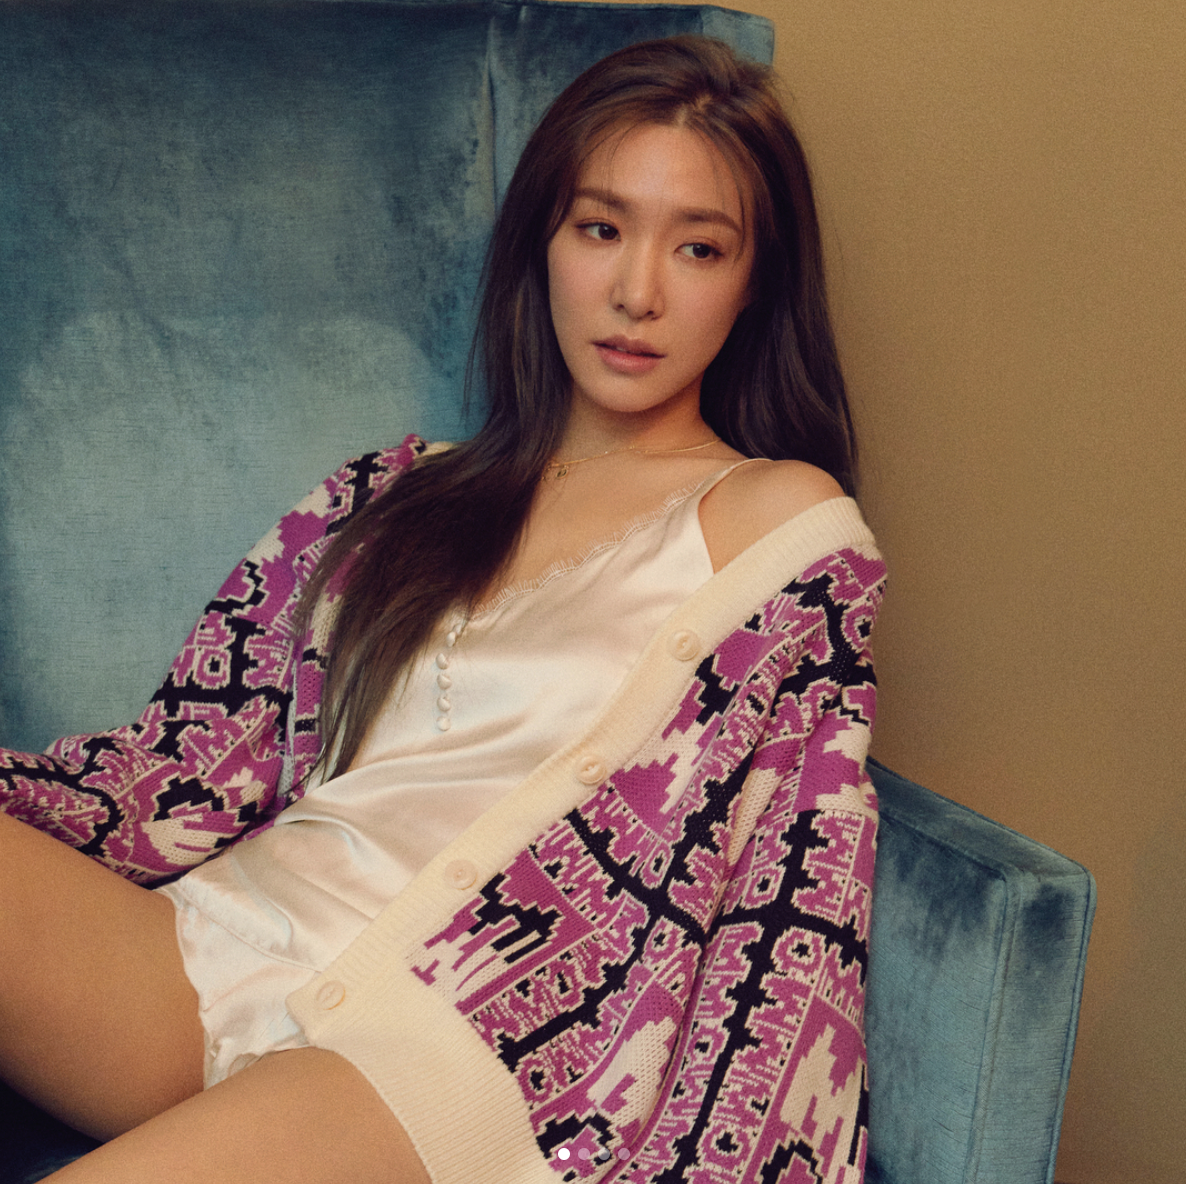 Tiffany lounging on a chair in white sleepwear